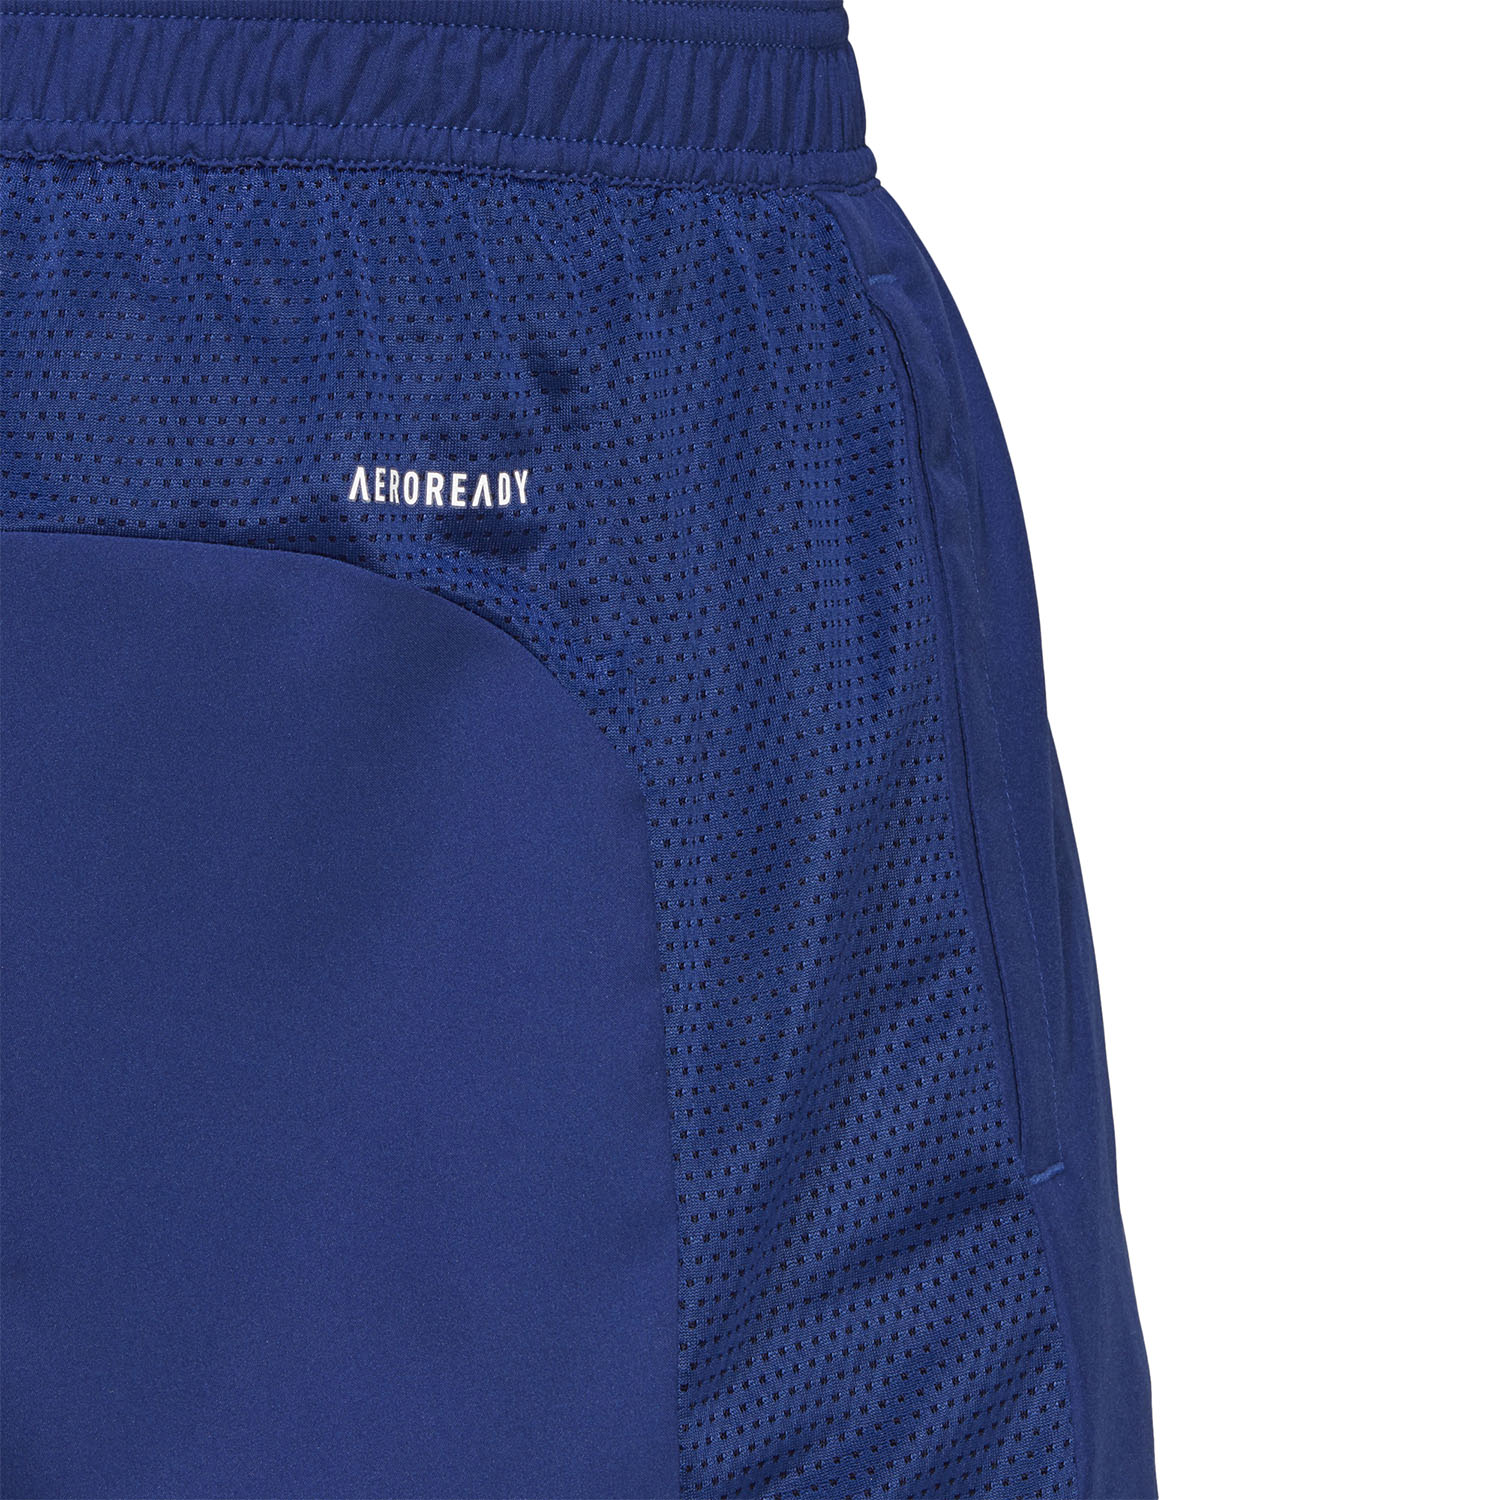 adidas Own The Run 5.5in Shorts - Victory Blue